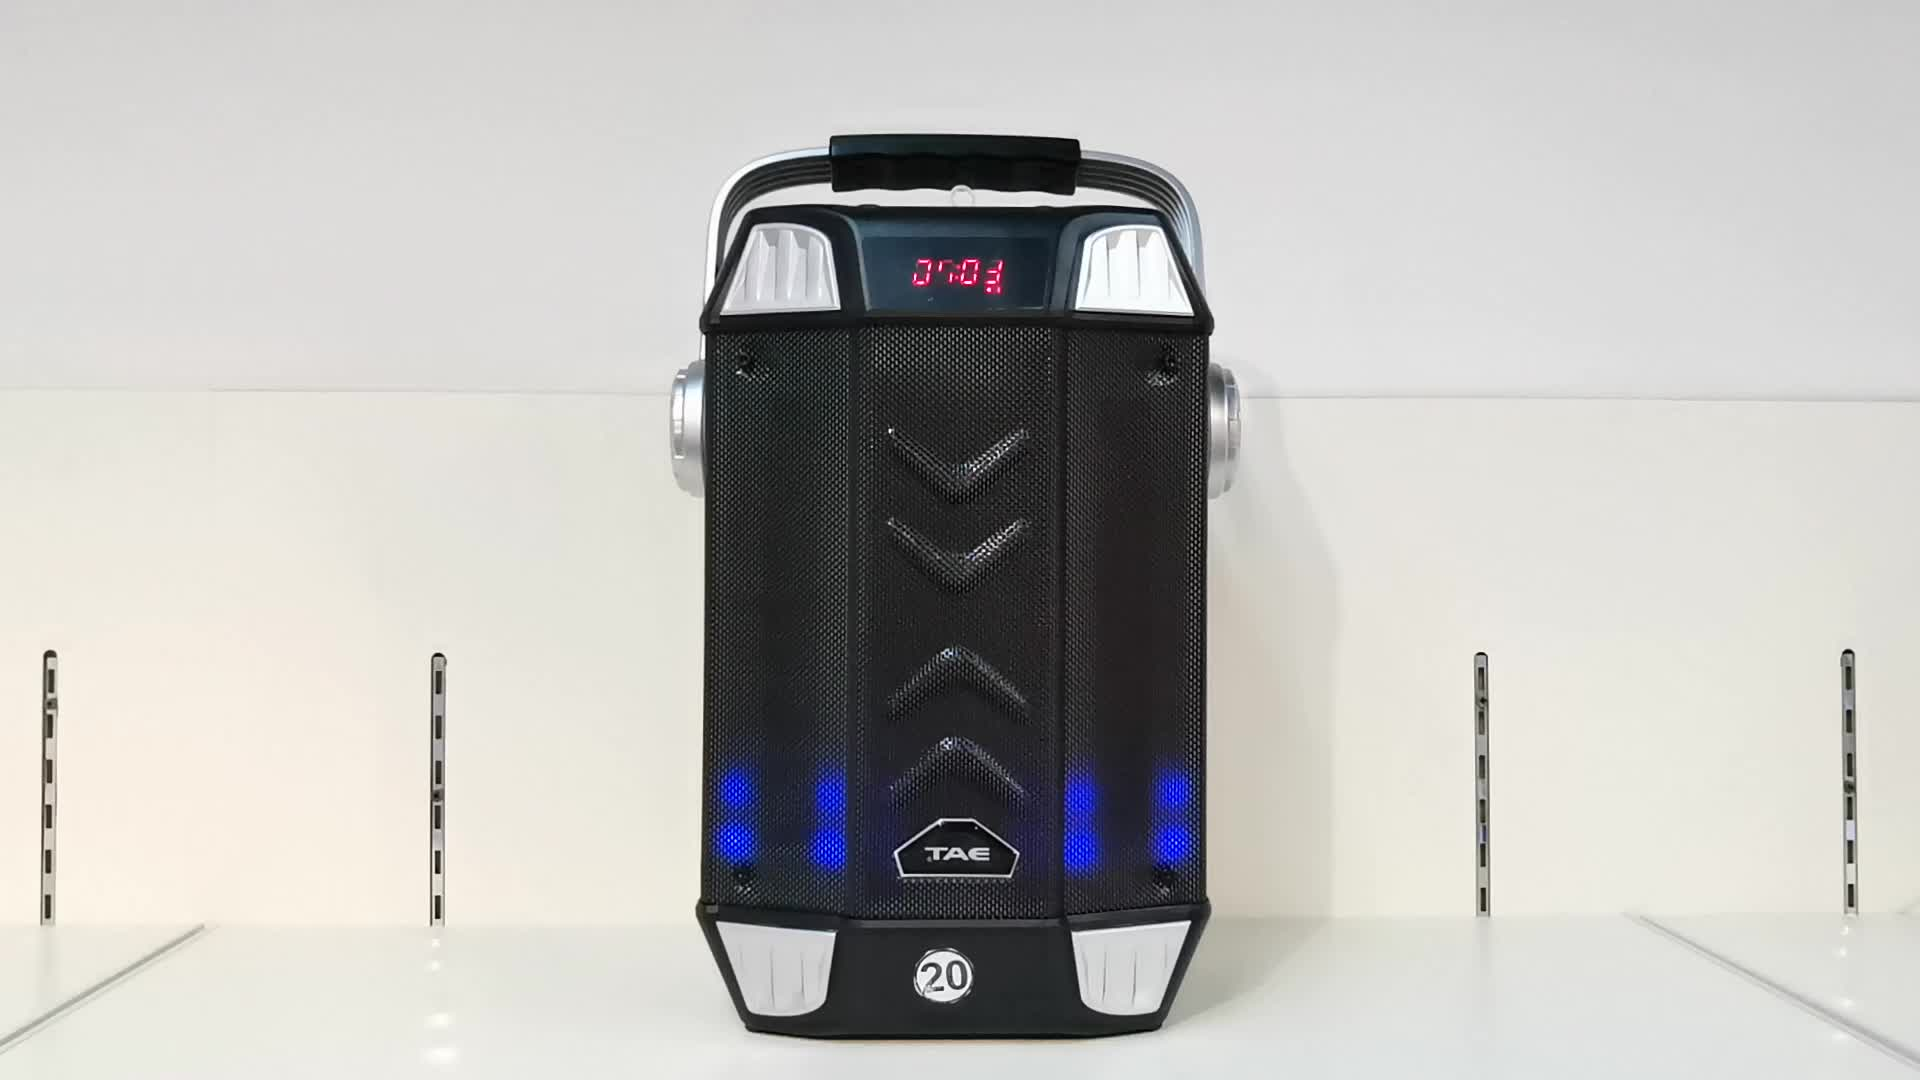 TS-111 Factory price cheap Outdoor Portable Speaker with USB/FM/SD card/BT/LED Display/Remote Control